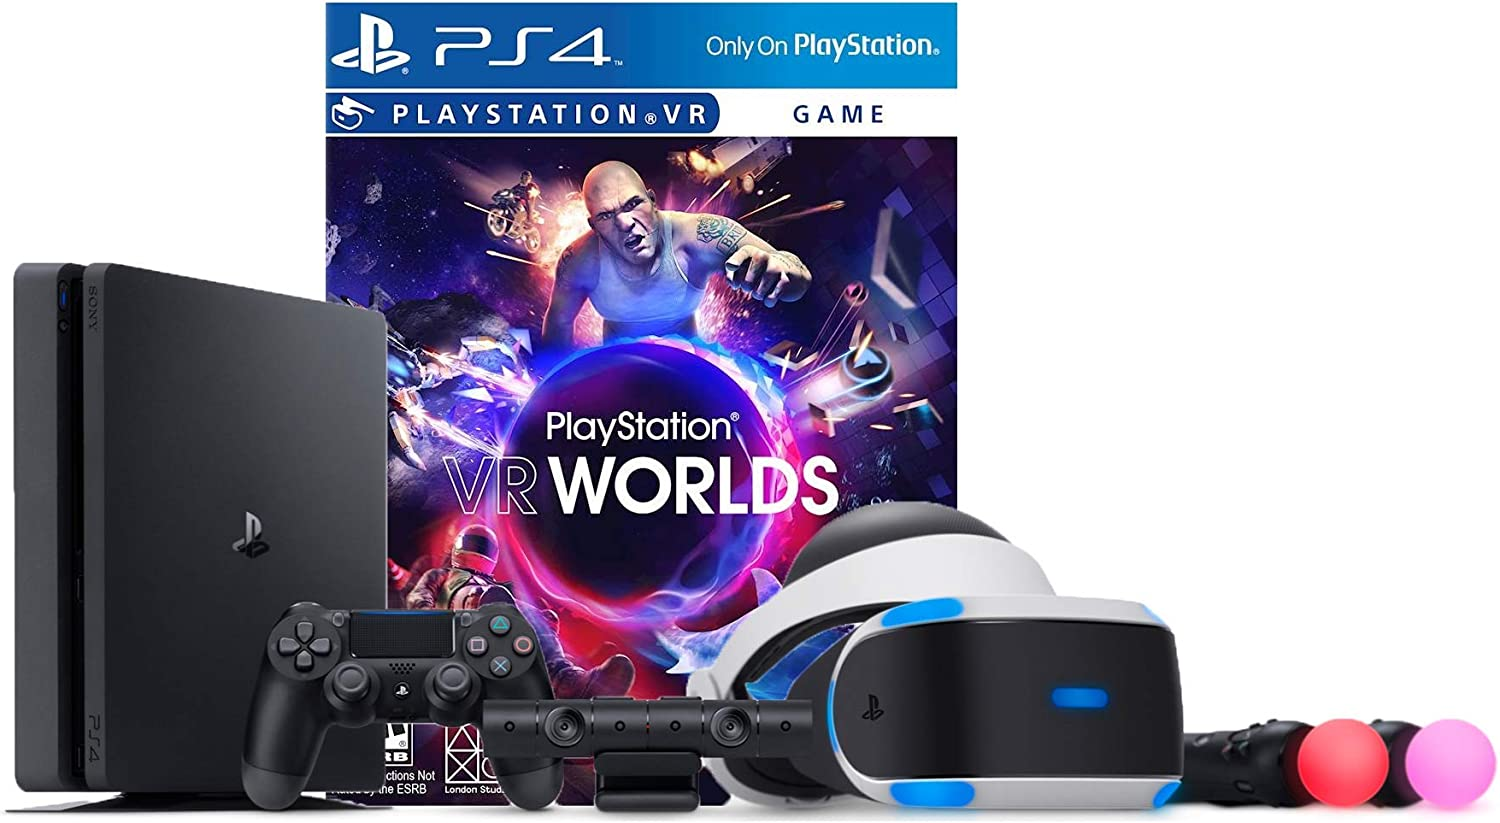 PlayStation VR Launch Bundle 2 Items VR Launch Bundle, Sony PlayStation4 Slim 1TB Console- Jet Black